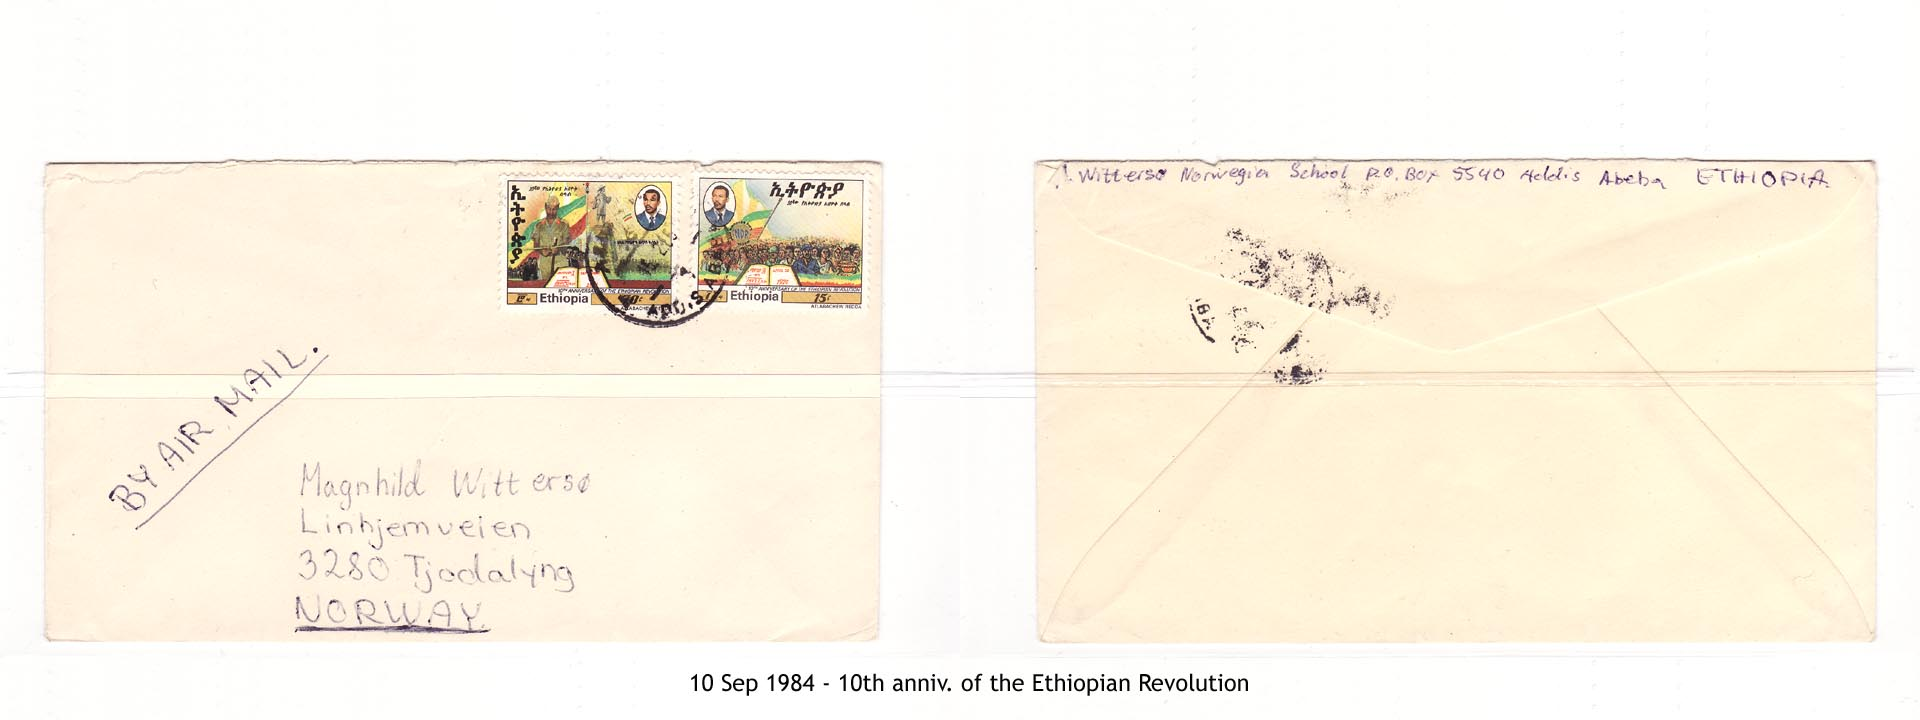 19840910 - 10th anniv. of the Ethiopian Revolution